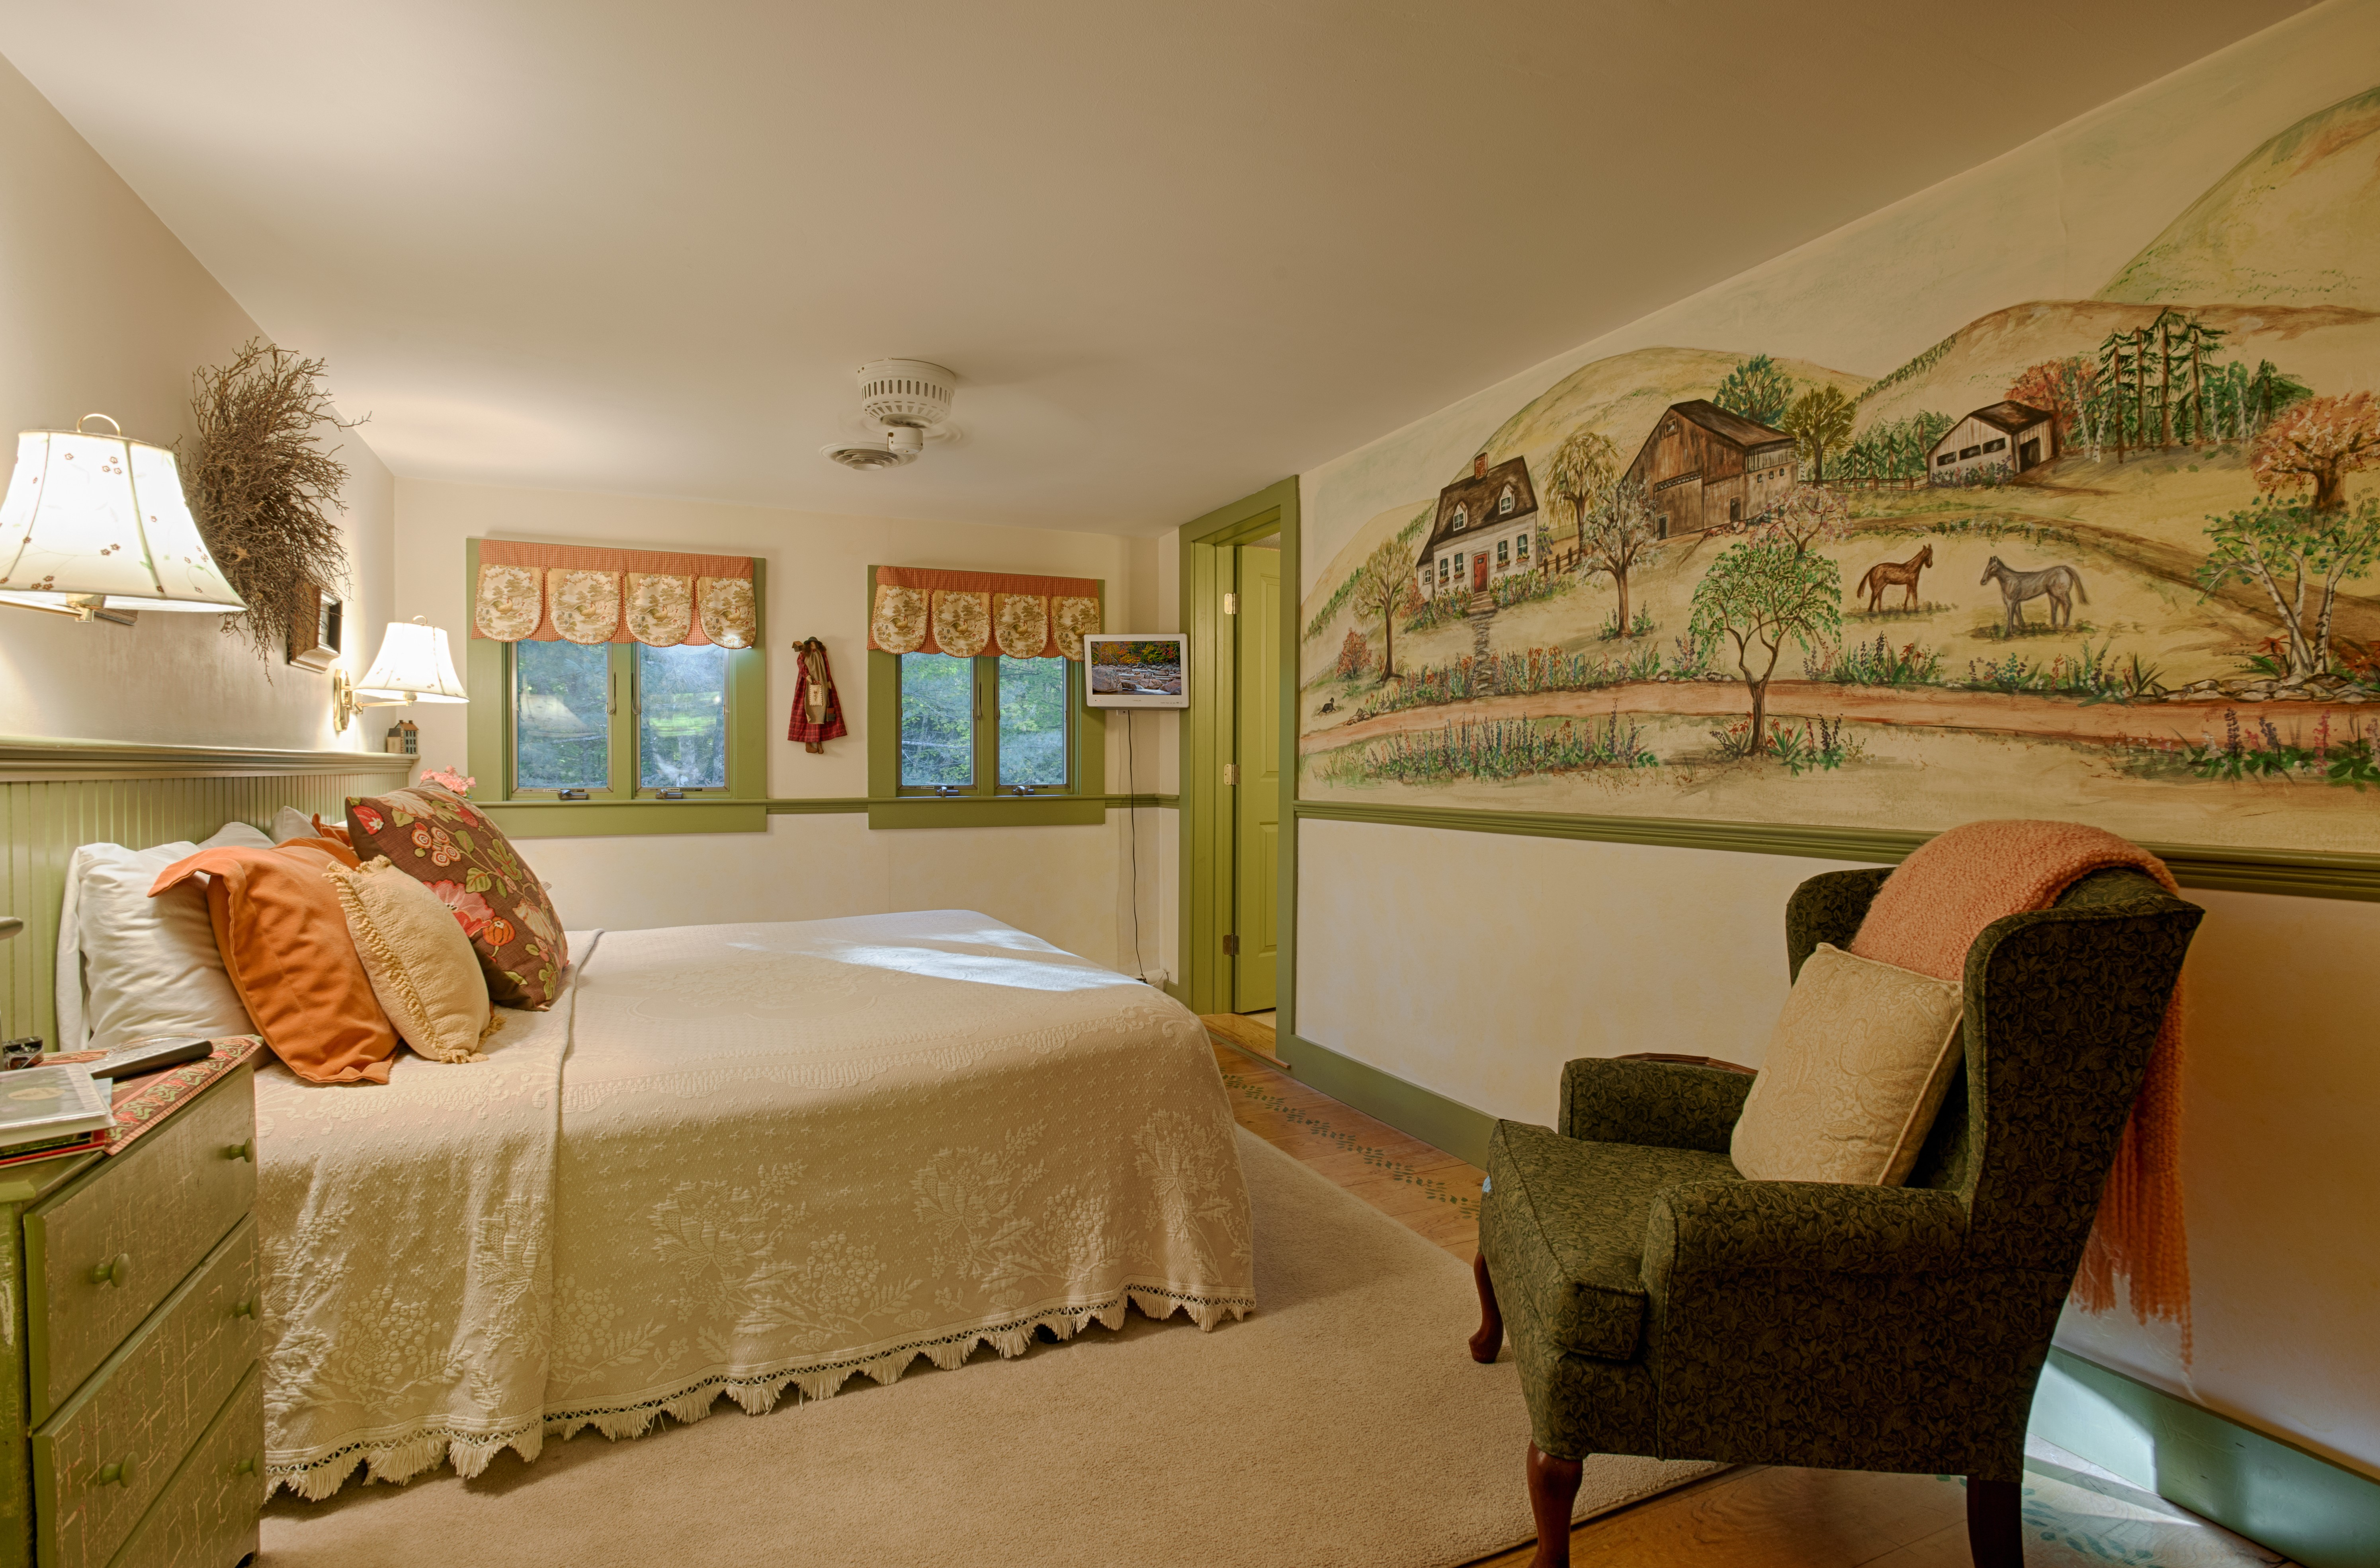 Mural Room with King Bed